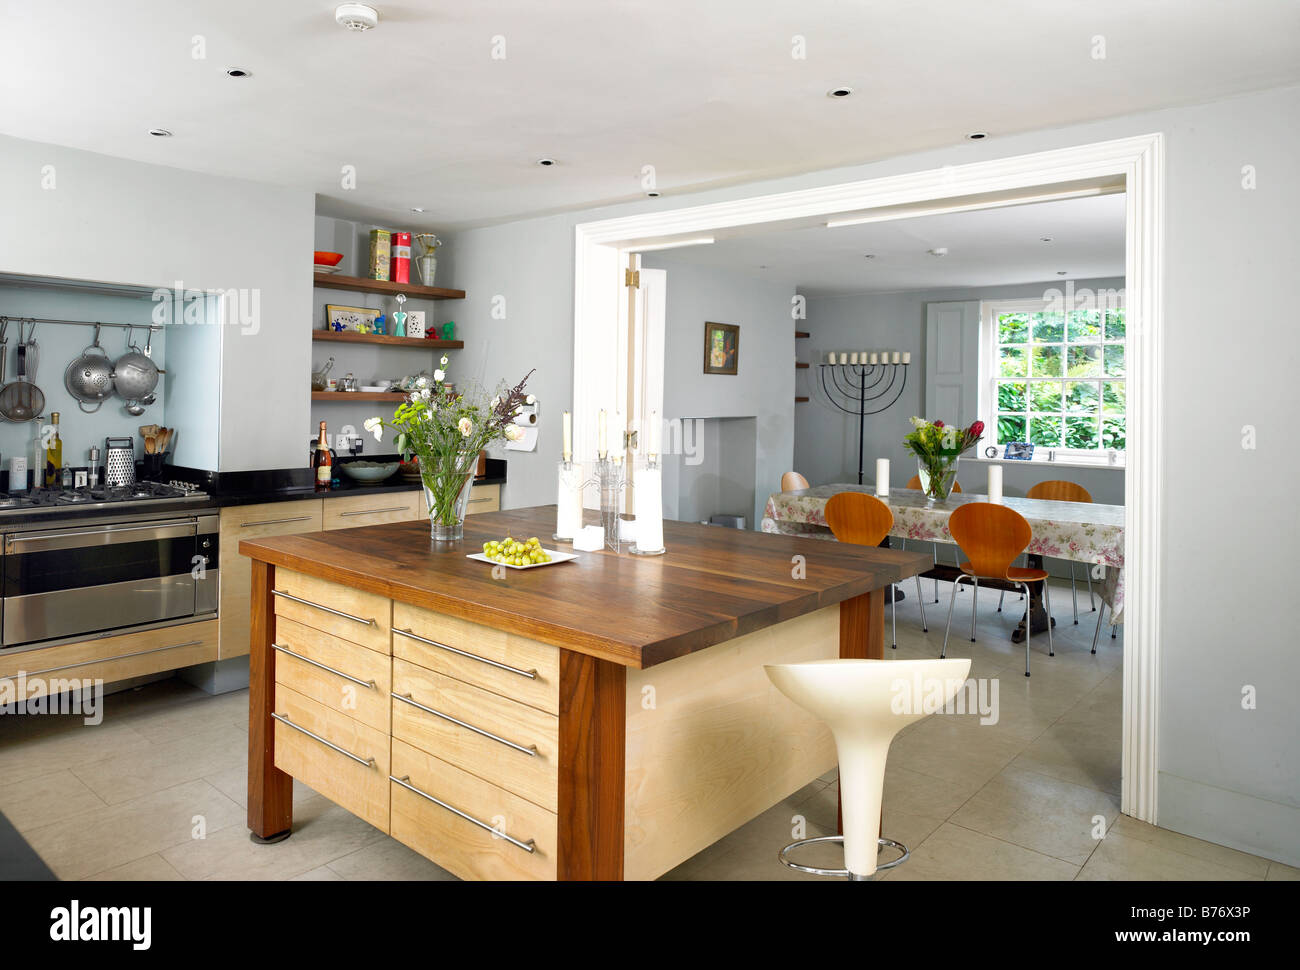 basement kitchen in georgian townhouse in north london stock photo